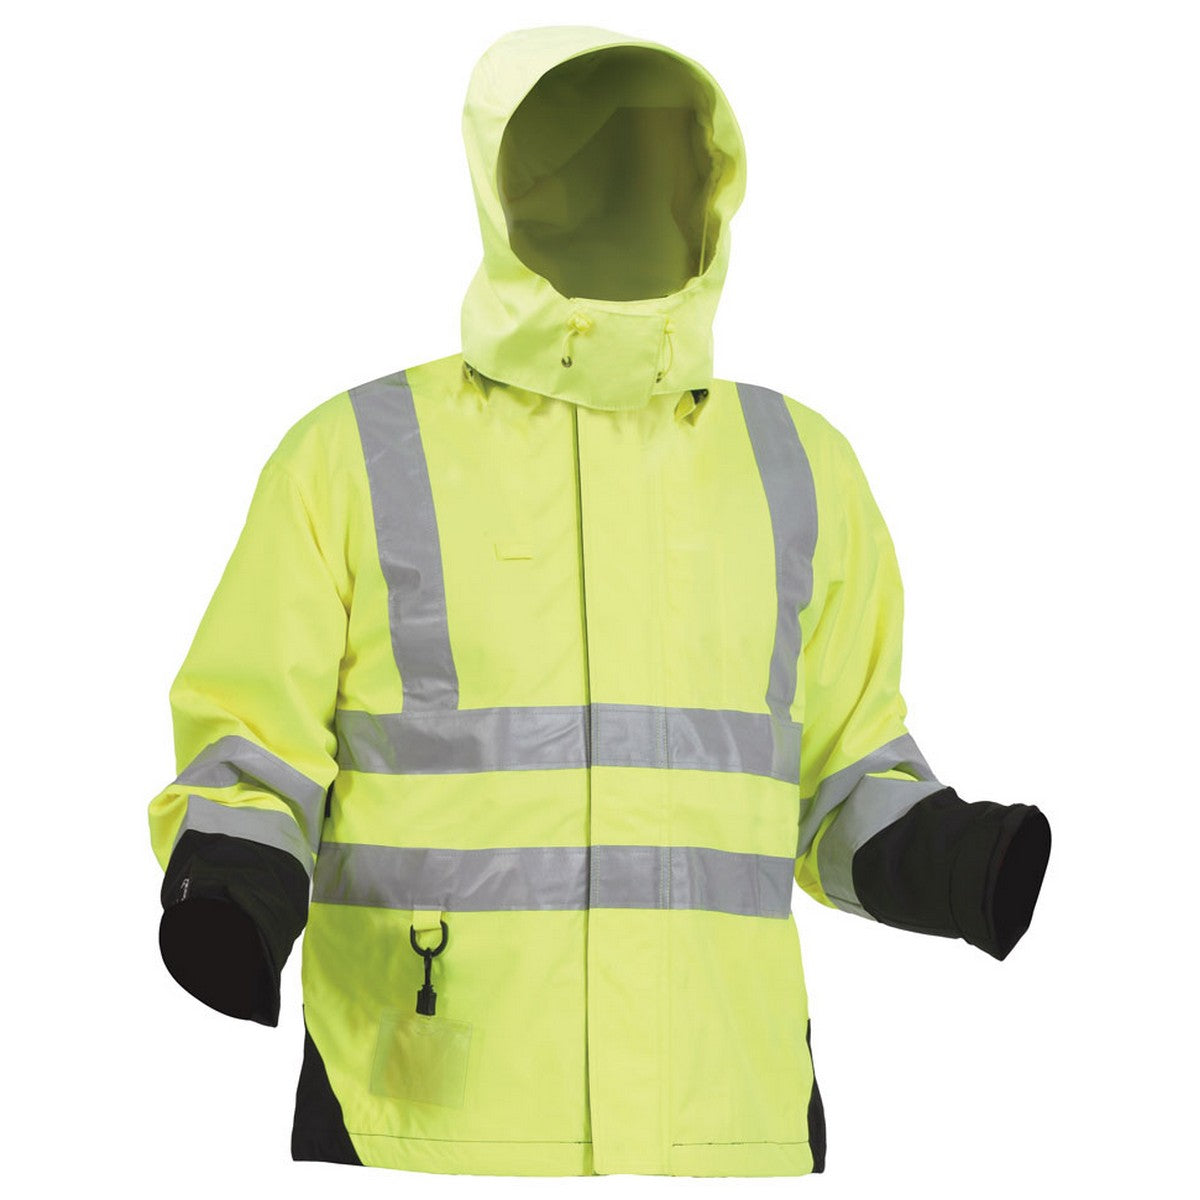 Image of Bison Extreme Jacket Yellow